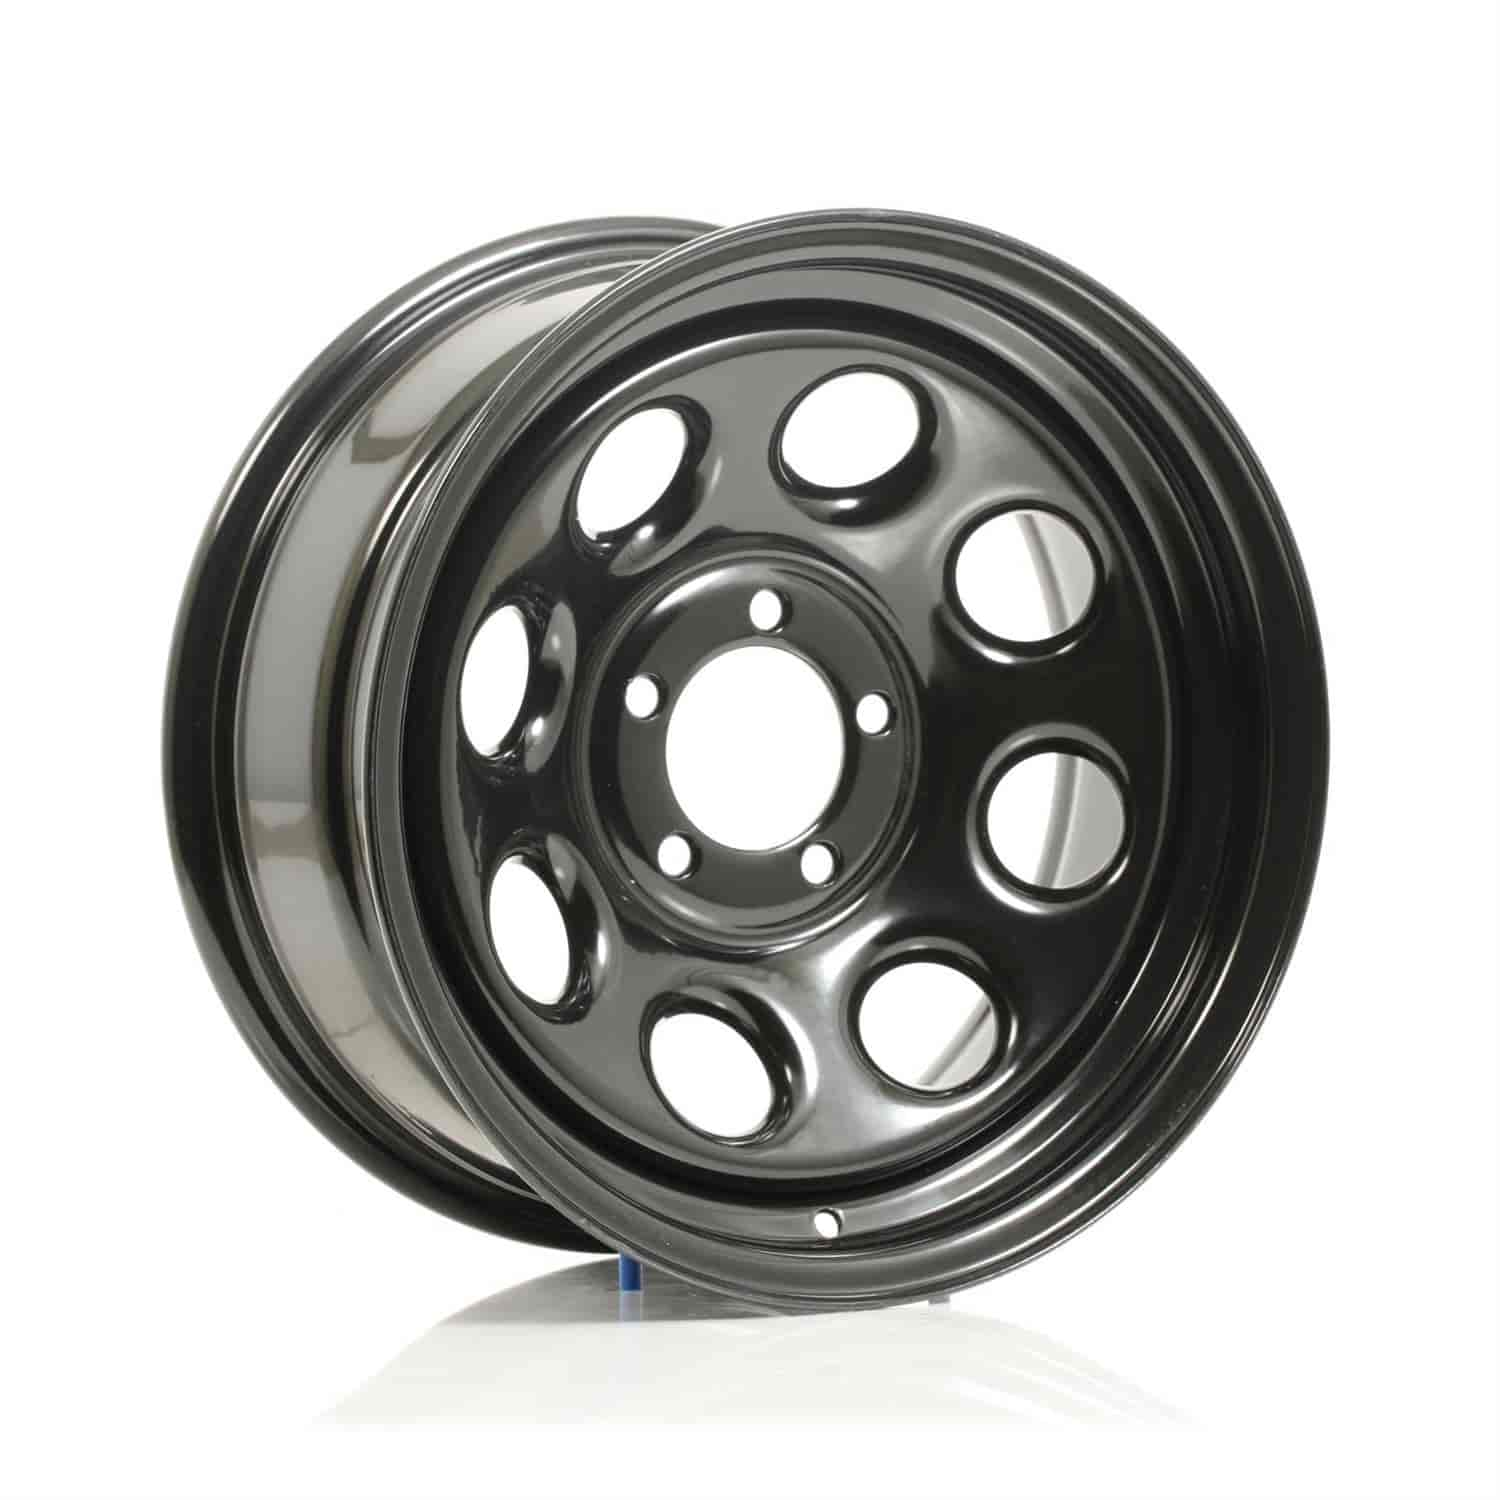 Cragar 3977750 - Cragar Black Soft 8 Wheels